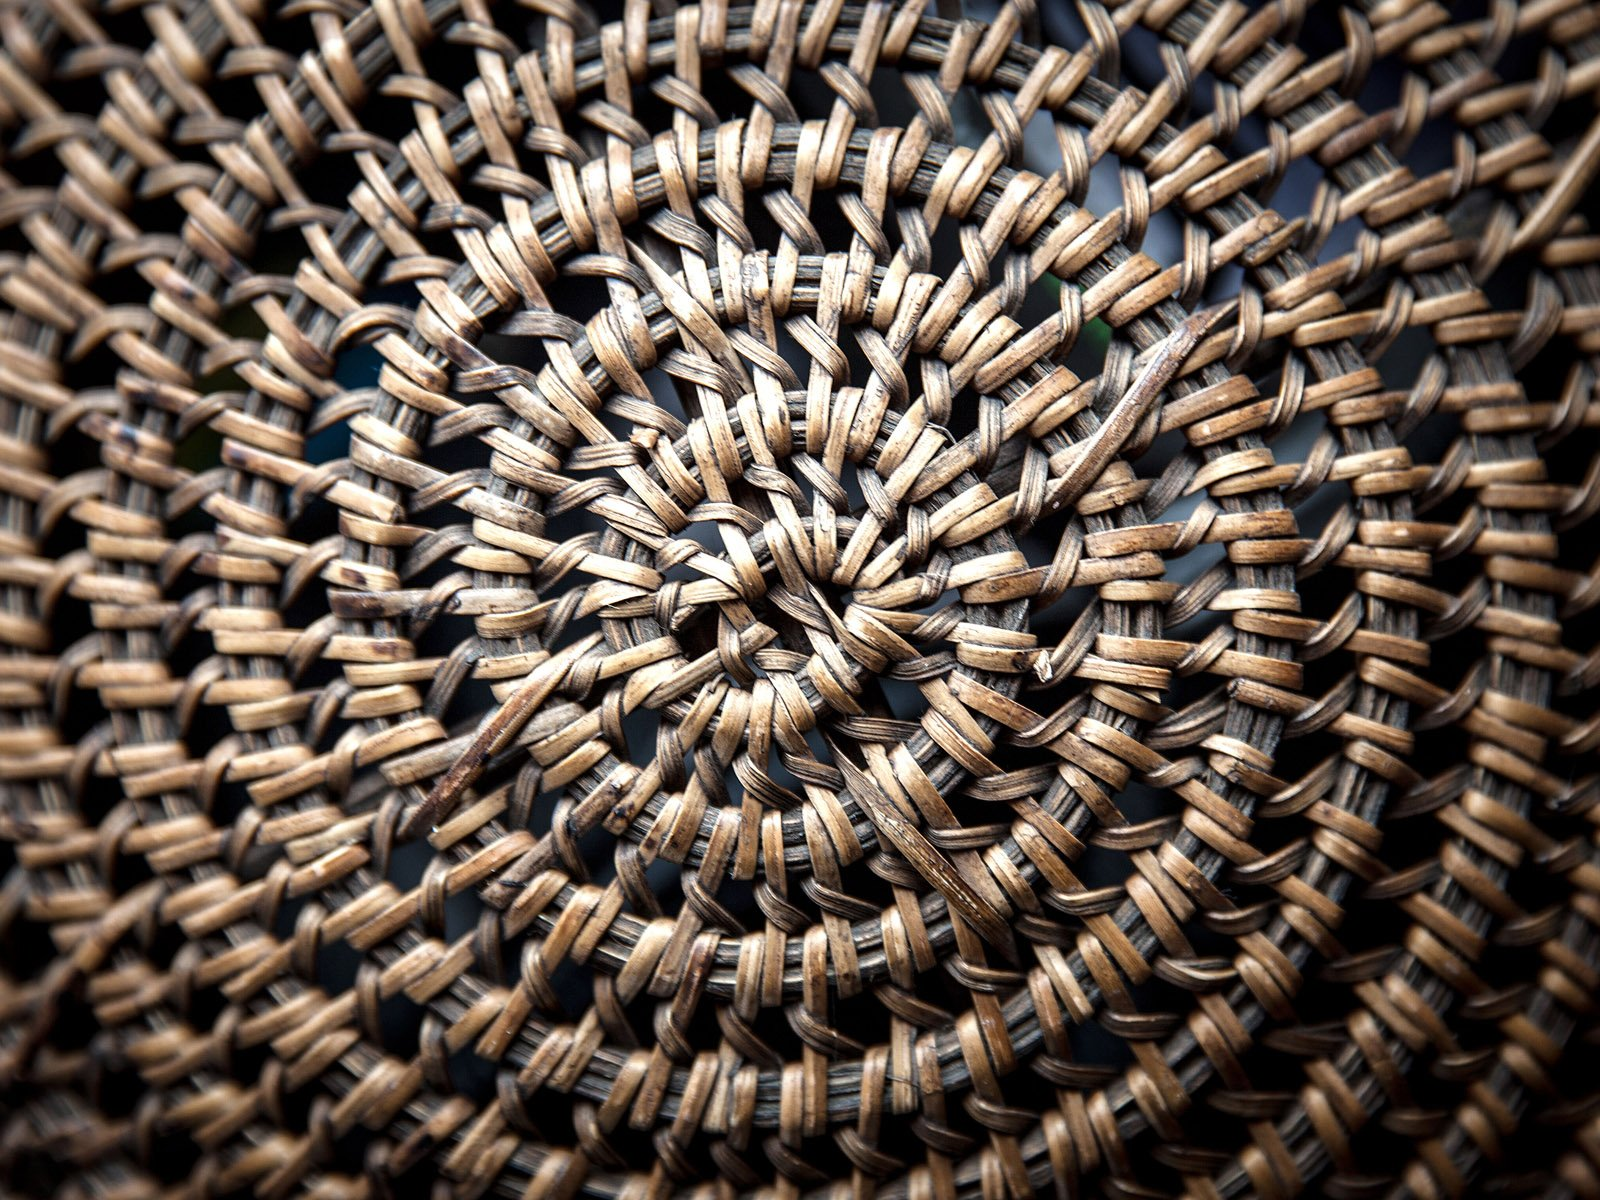 Detail - Indian basketry }